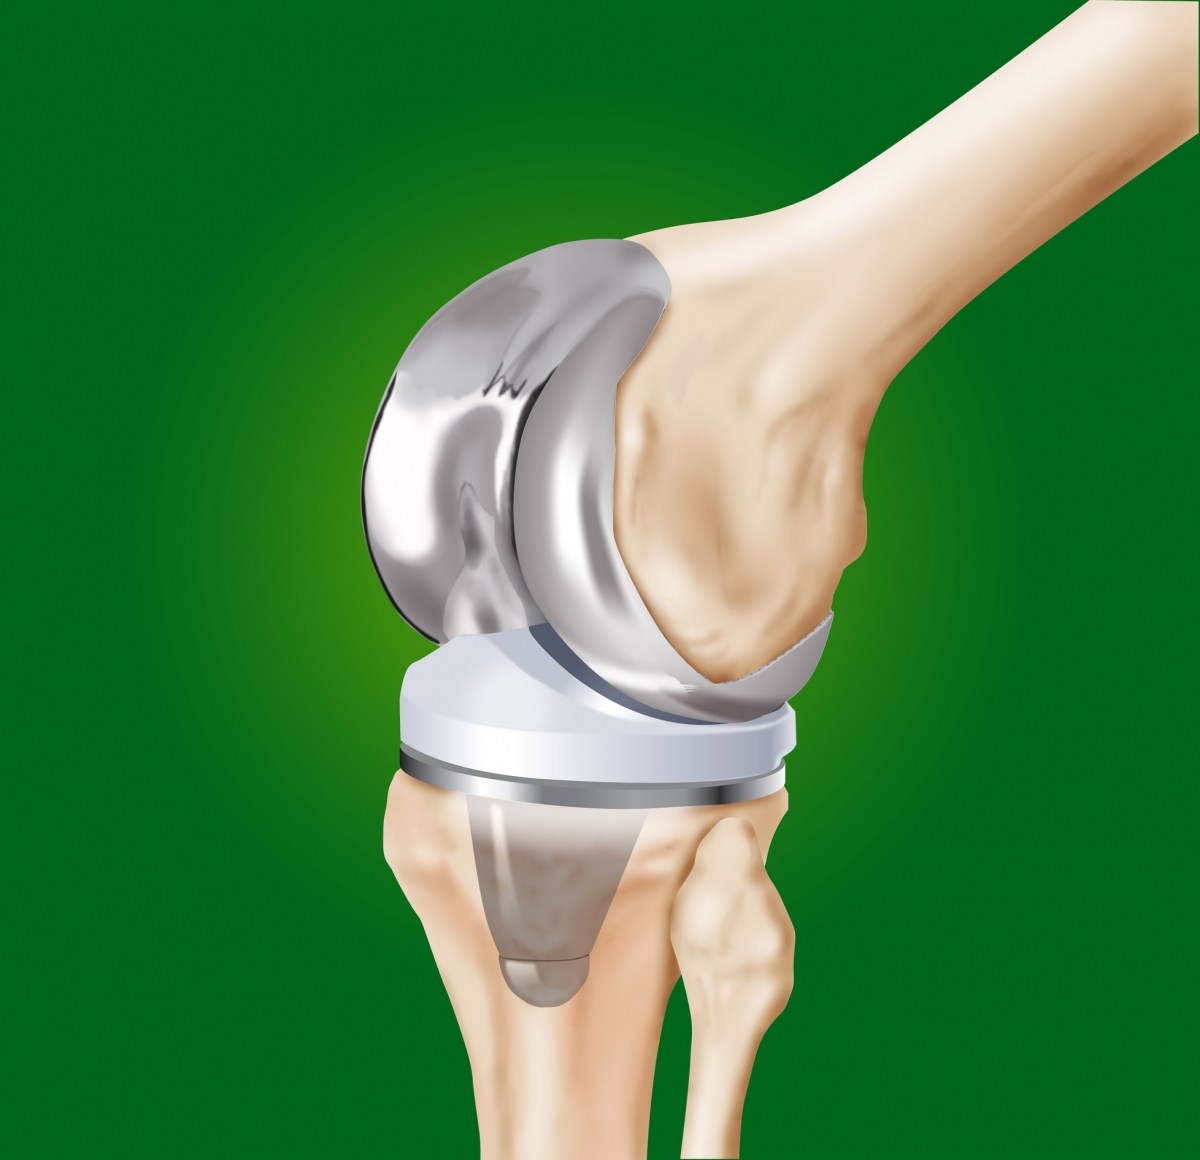 Knee Replacement Infection Treatment